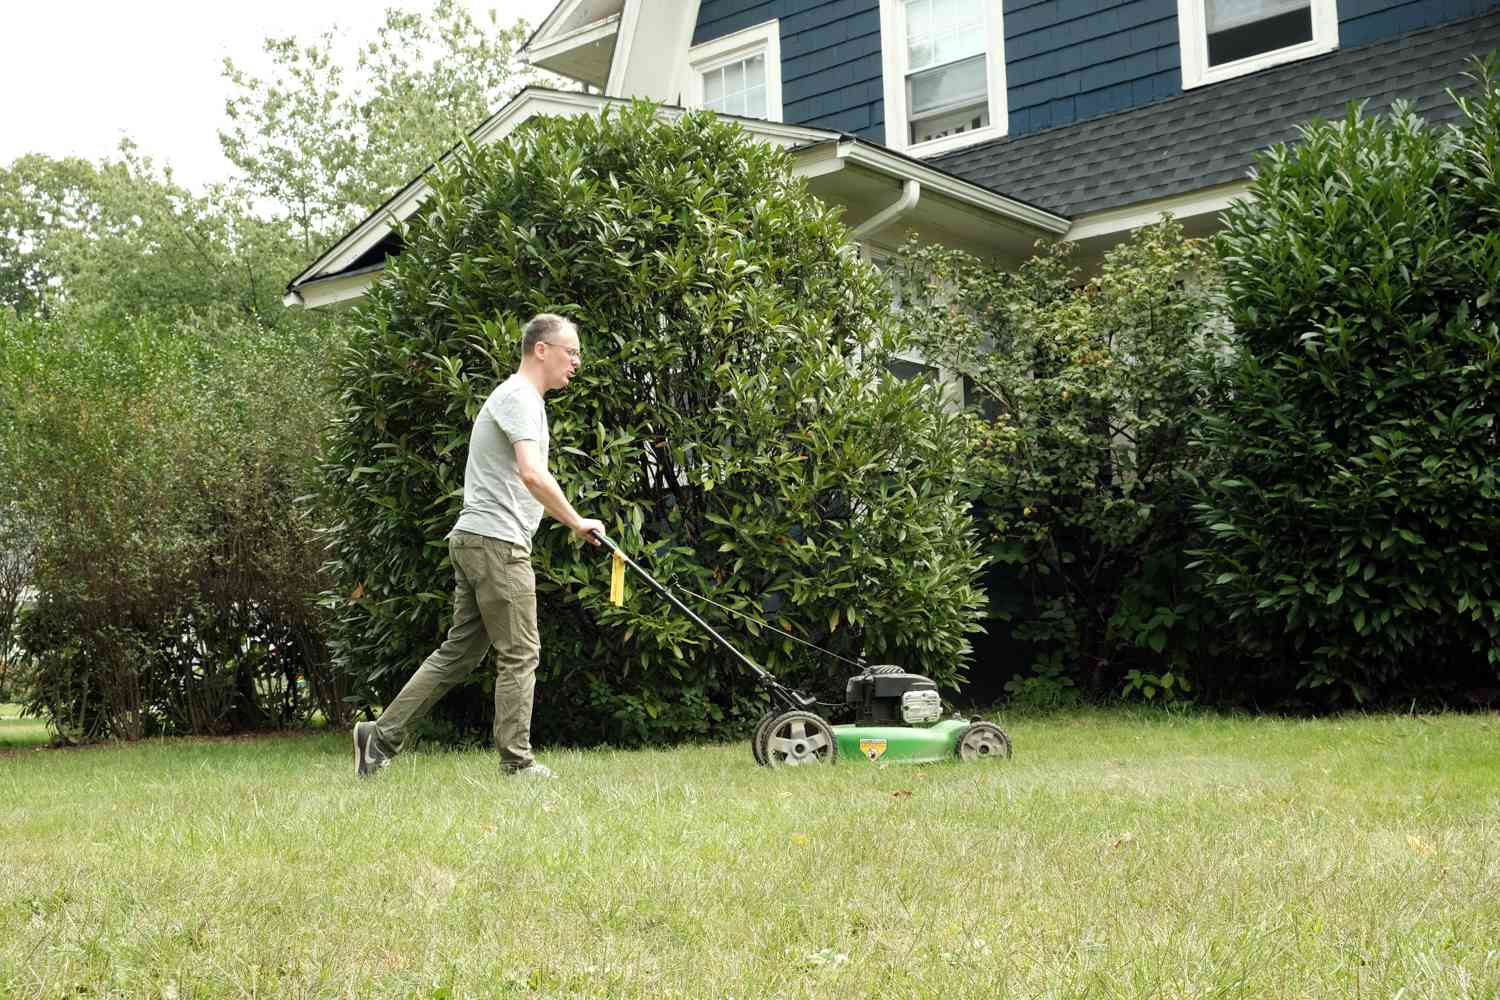 older man mows lawn with house behind